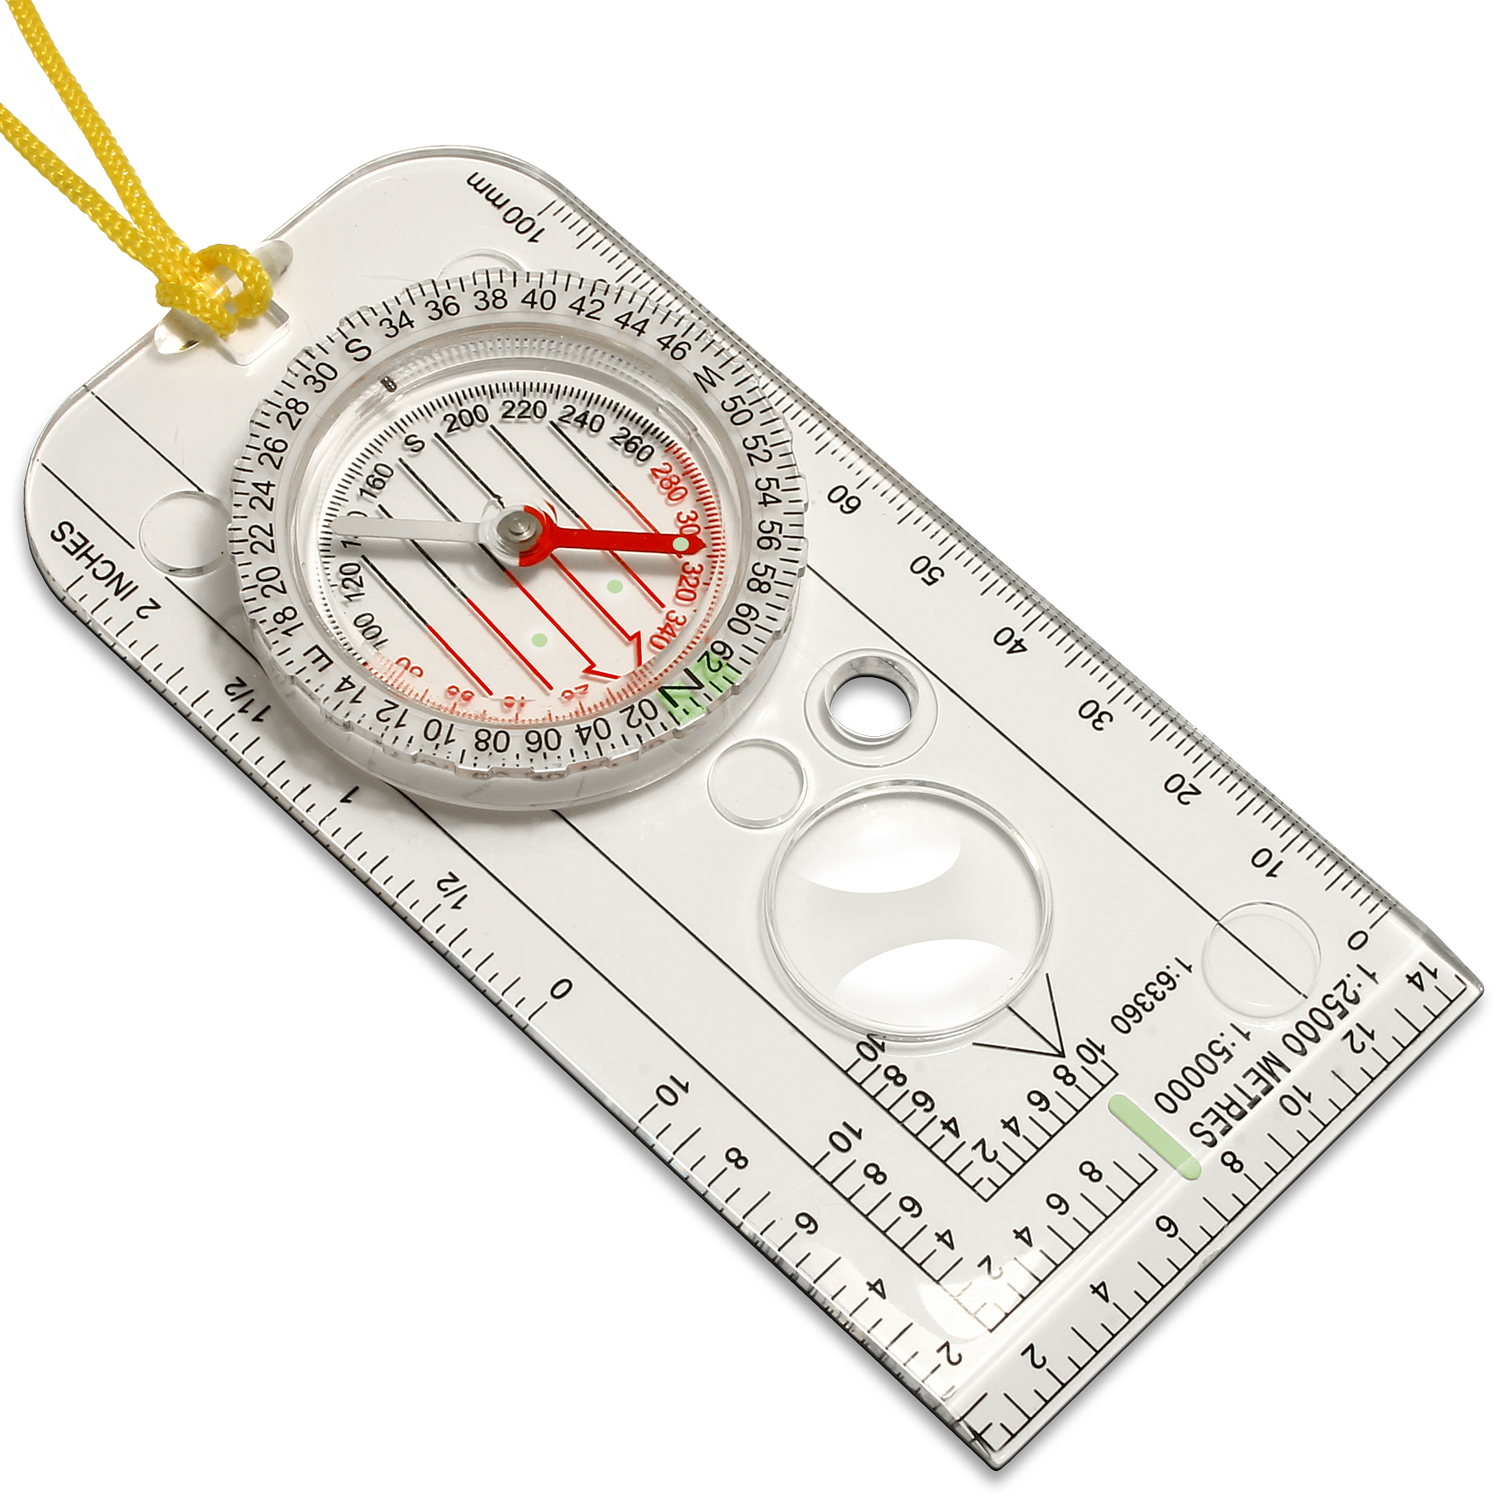 CampTeck U6867 Waterproof Orienteering Compass Navigation Compass Lanyard for Expedition Map Reading, Camping, Survival